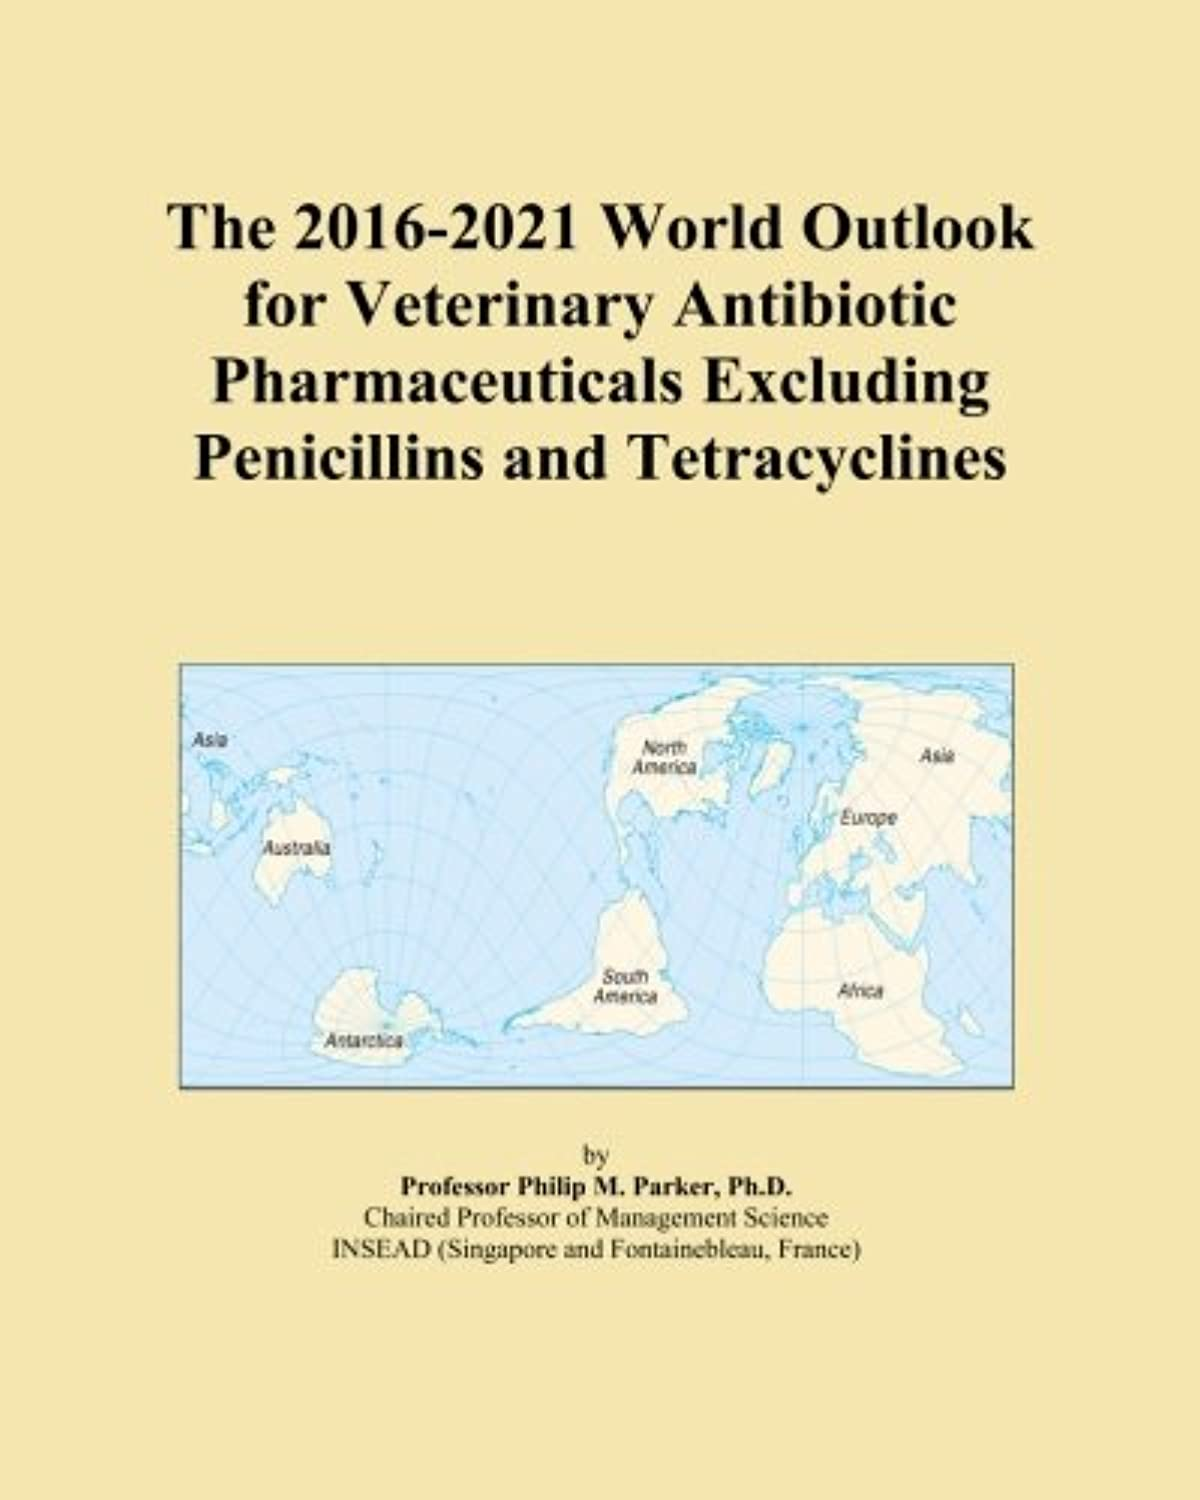 The 2016-2021 World Outlook for Veterinary Antibiotic Pharmaceuticals Excluding Penicillins and Tetracyclines